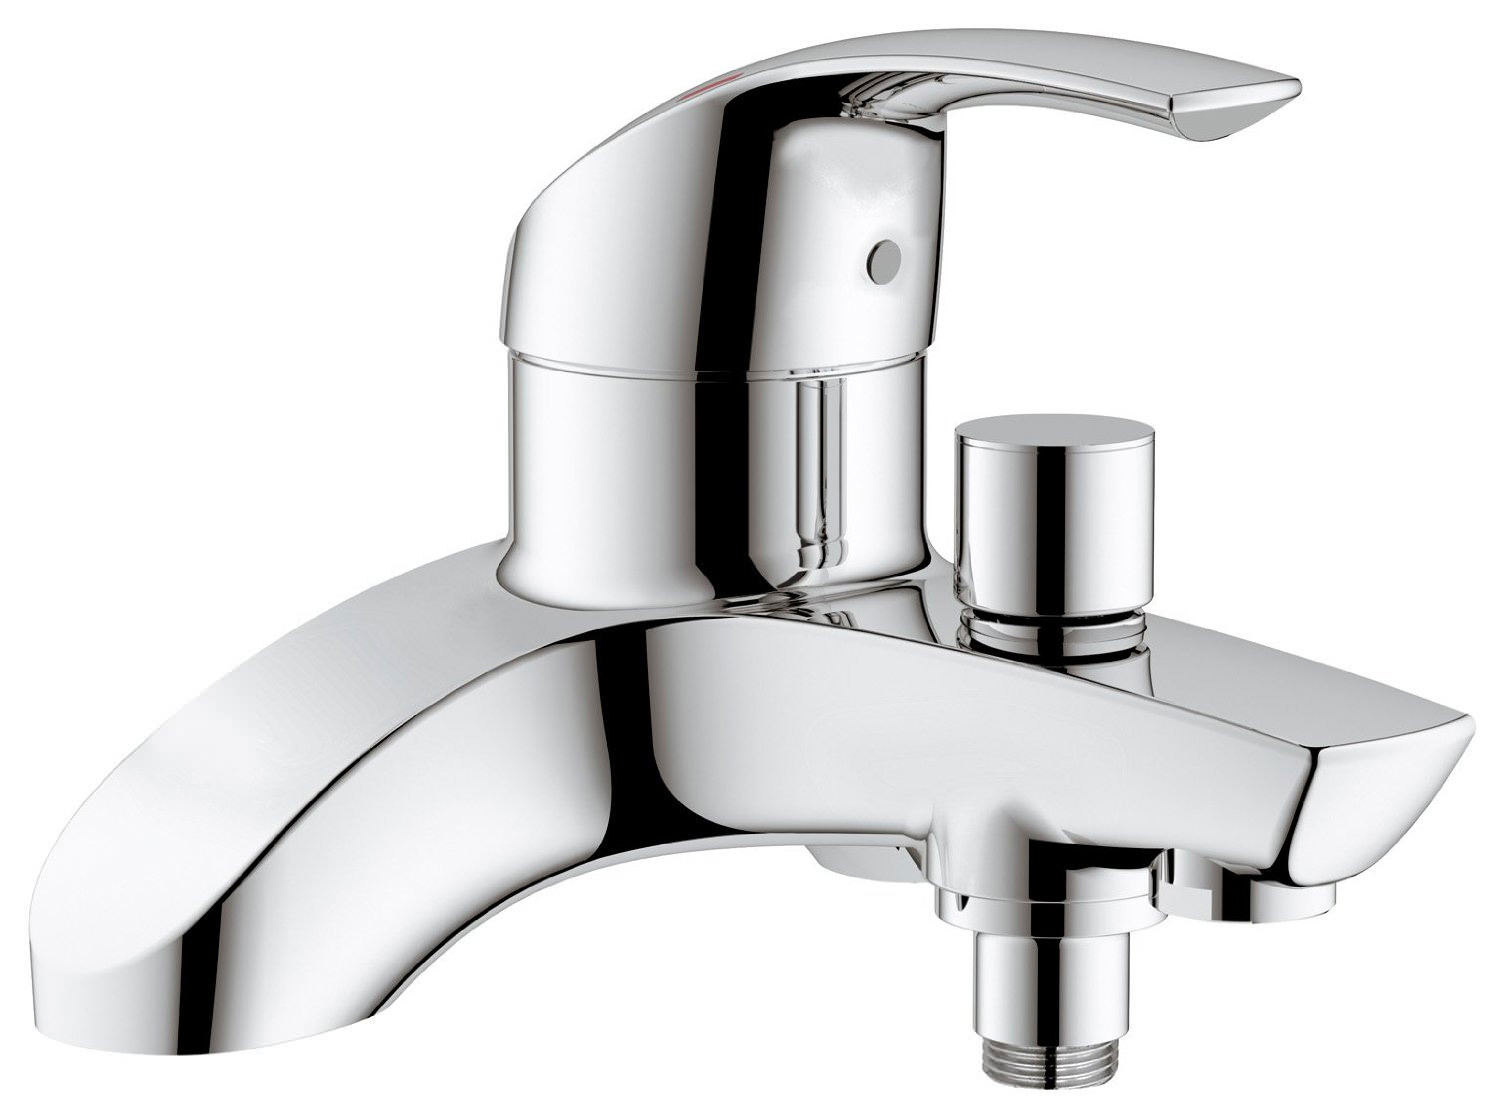 Grohe Eurosmart Deck Mounted Bath Shower Mixer Tap - 25105000